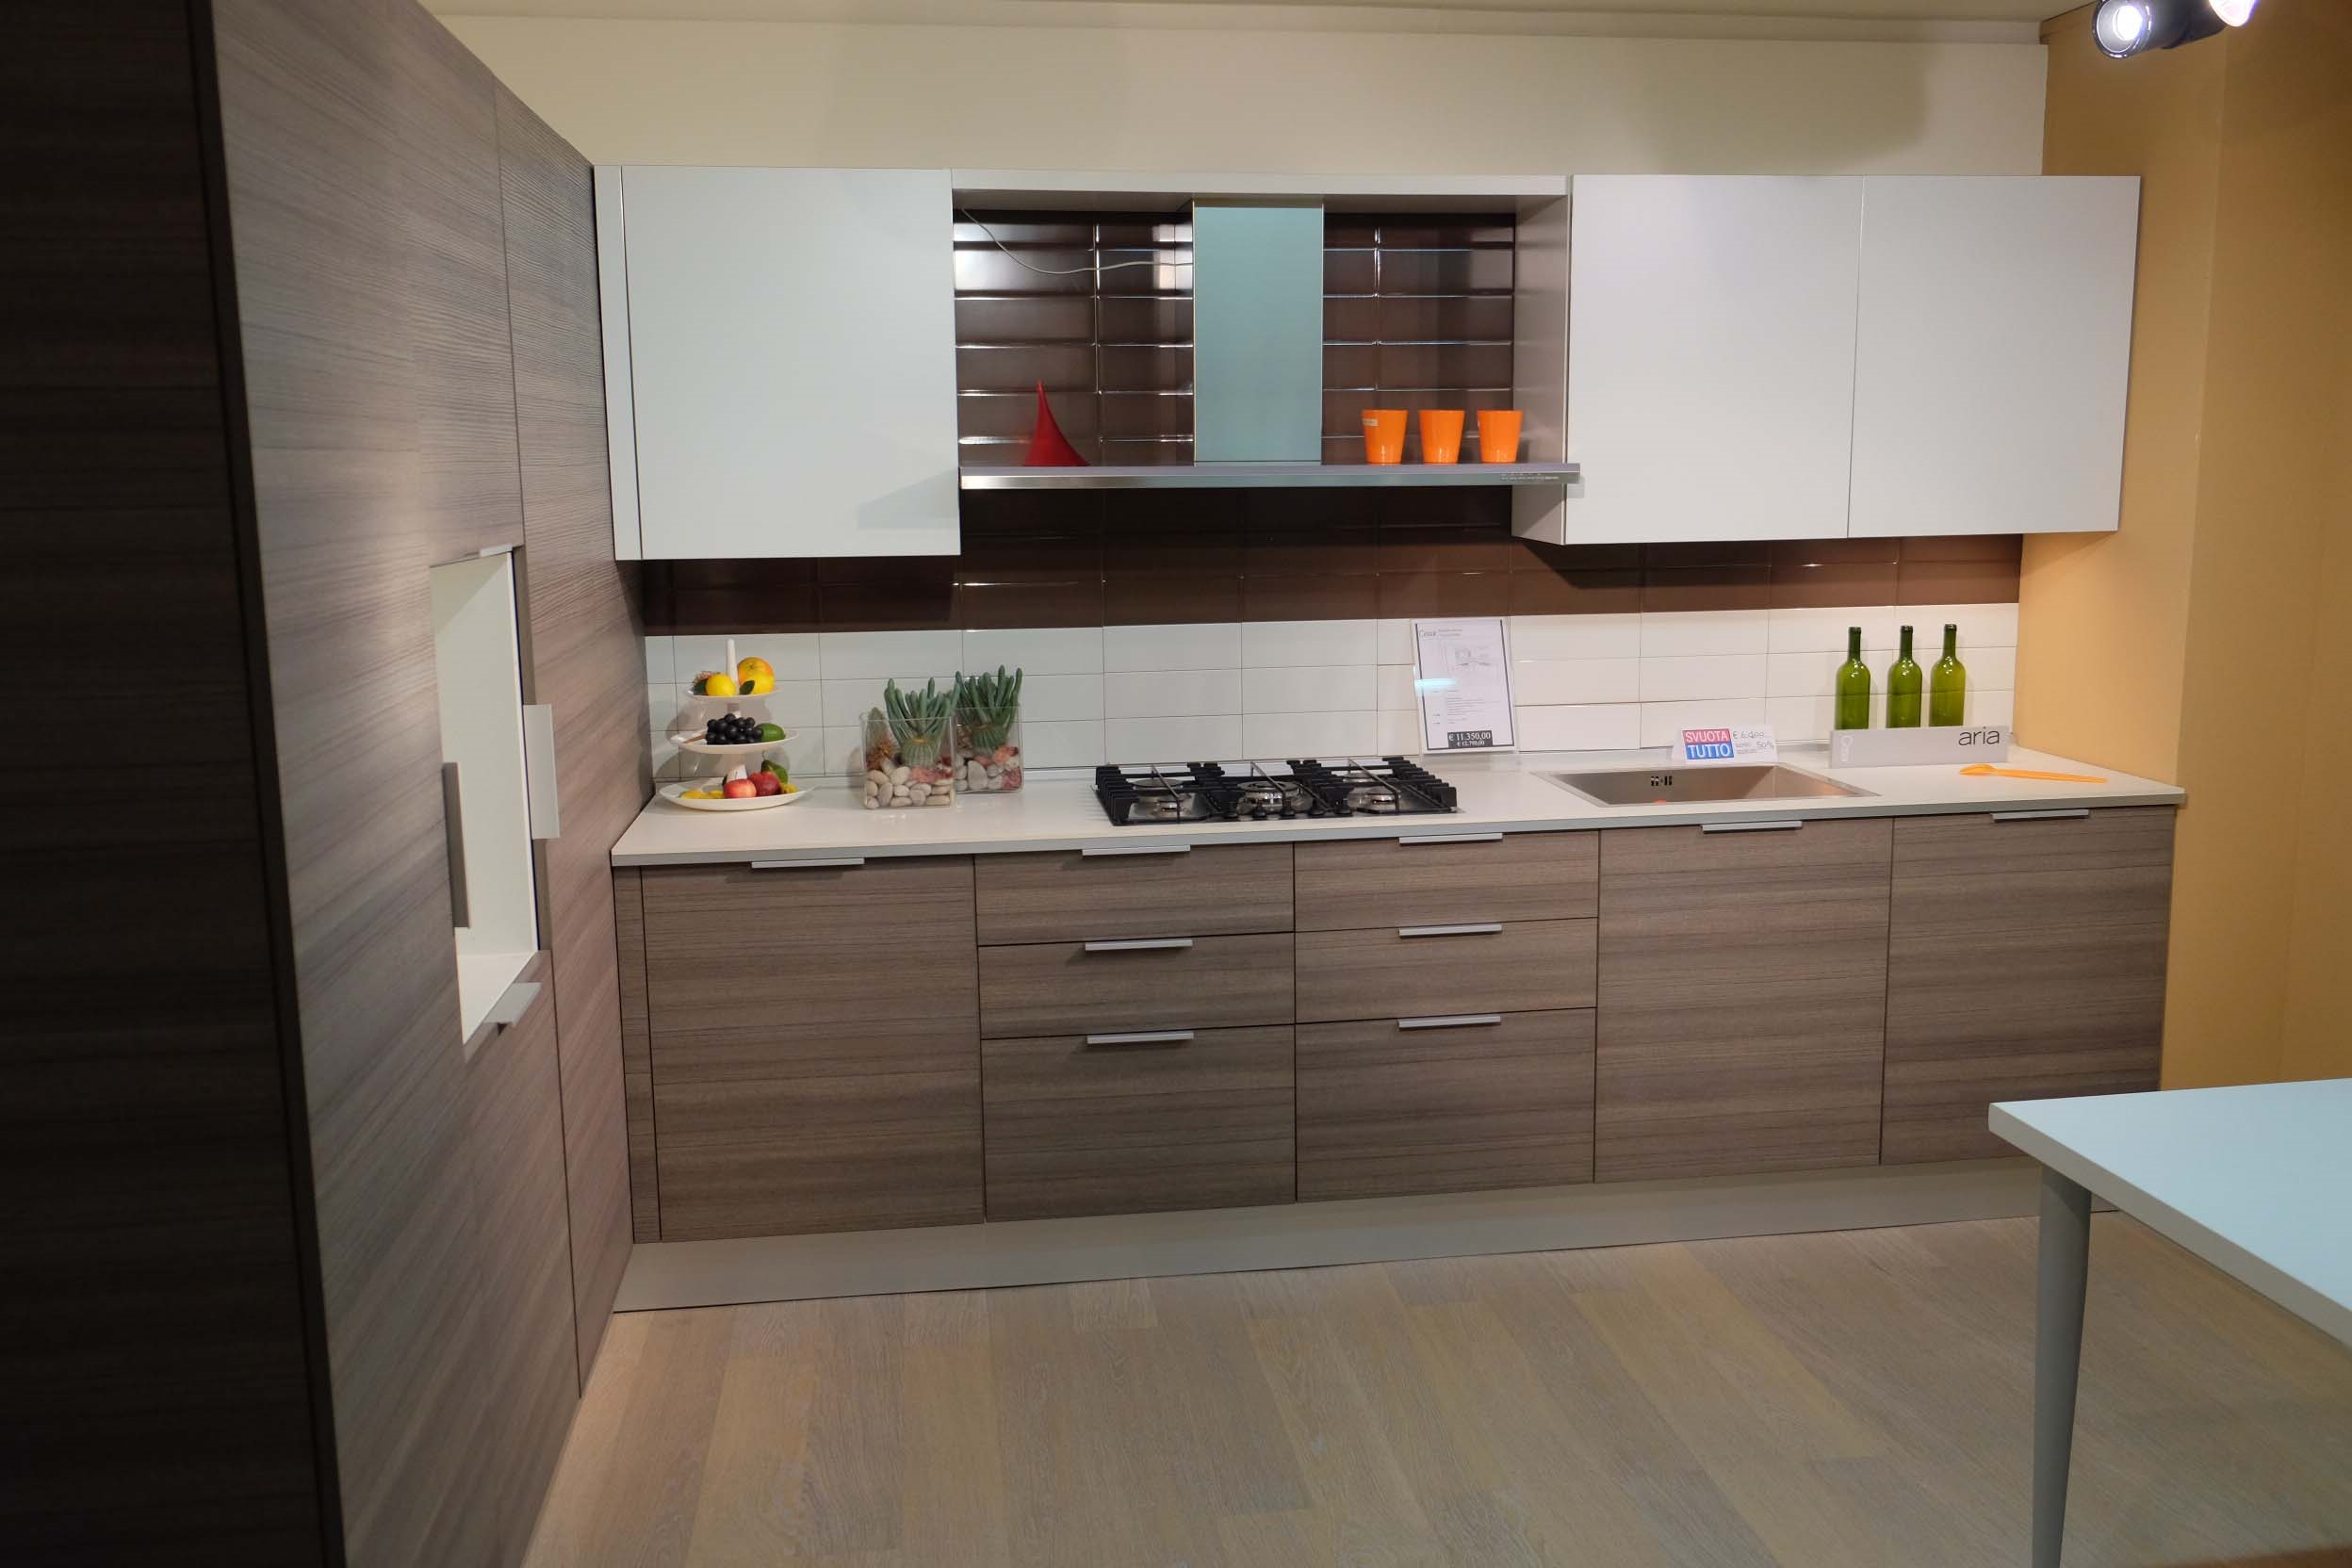 Emejing Net Cucine Opinioni Pictures - Skilifts.us - skilifts.us